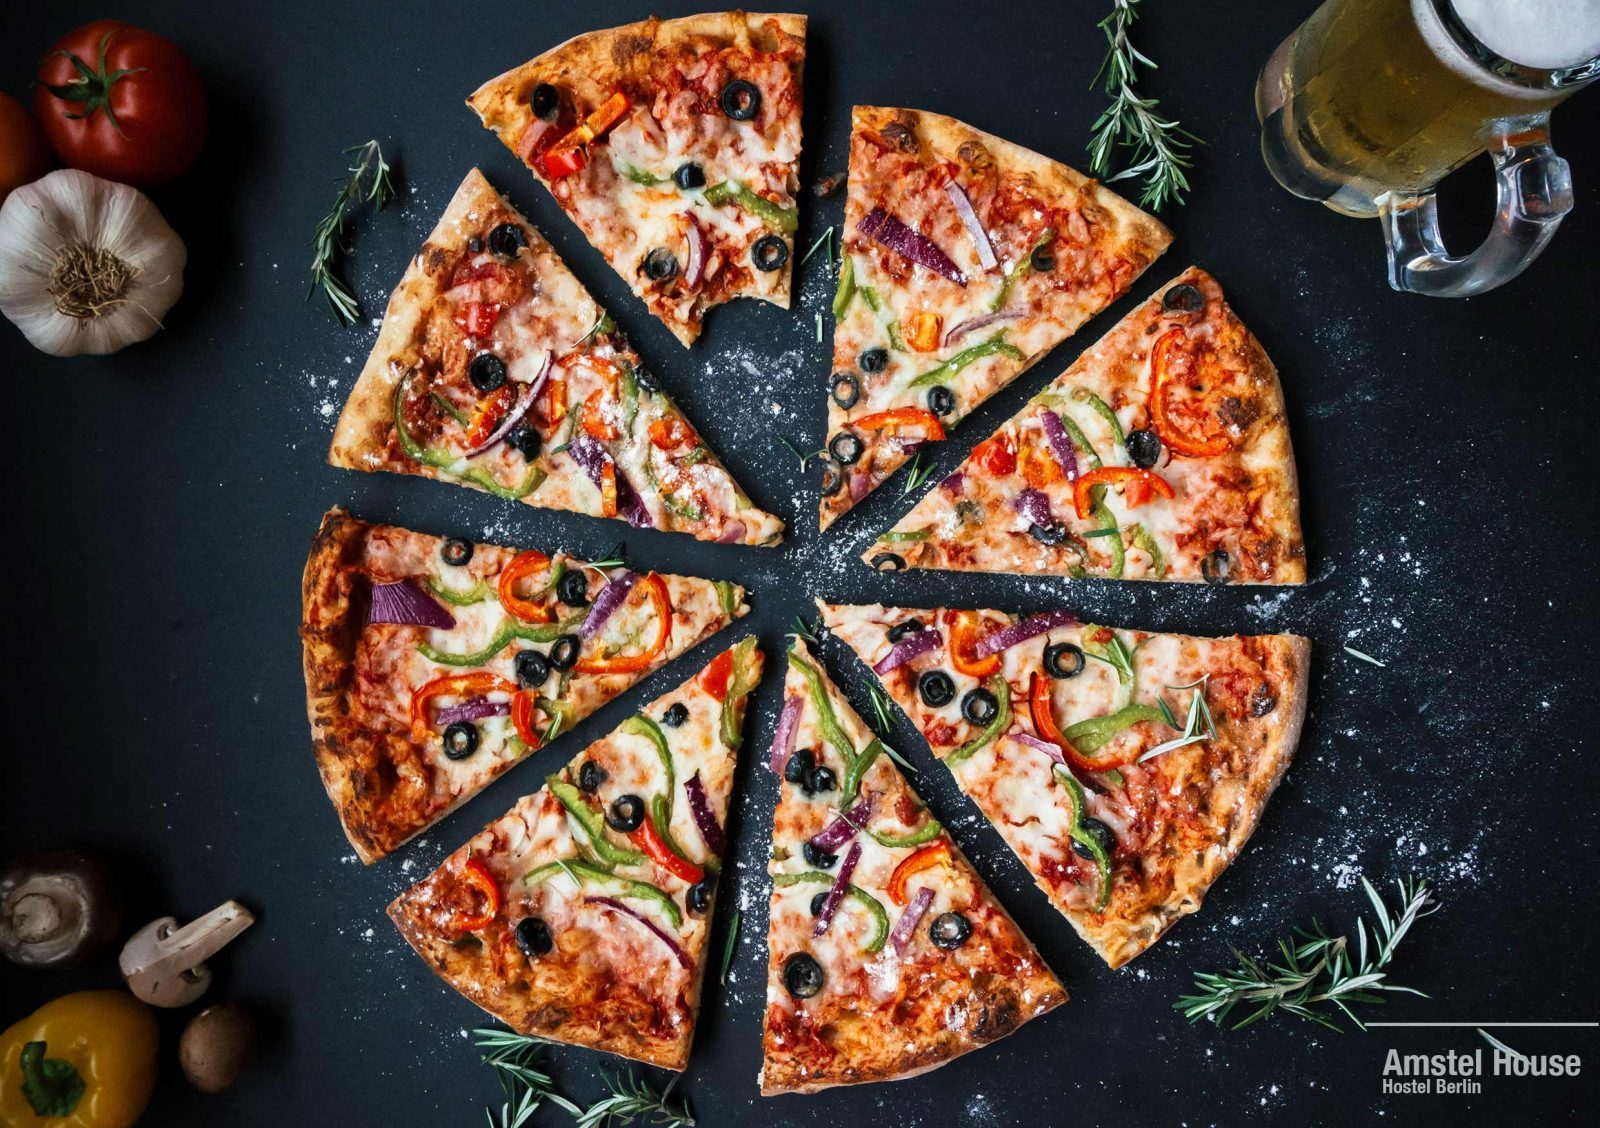 berlin best pizza places